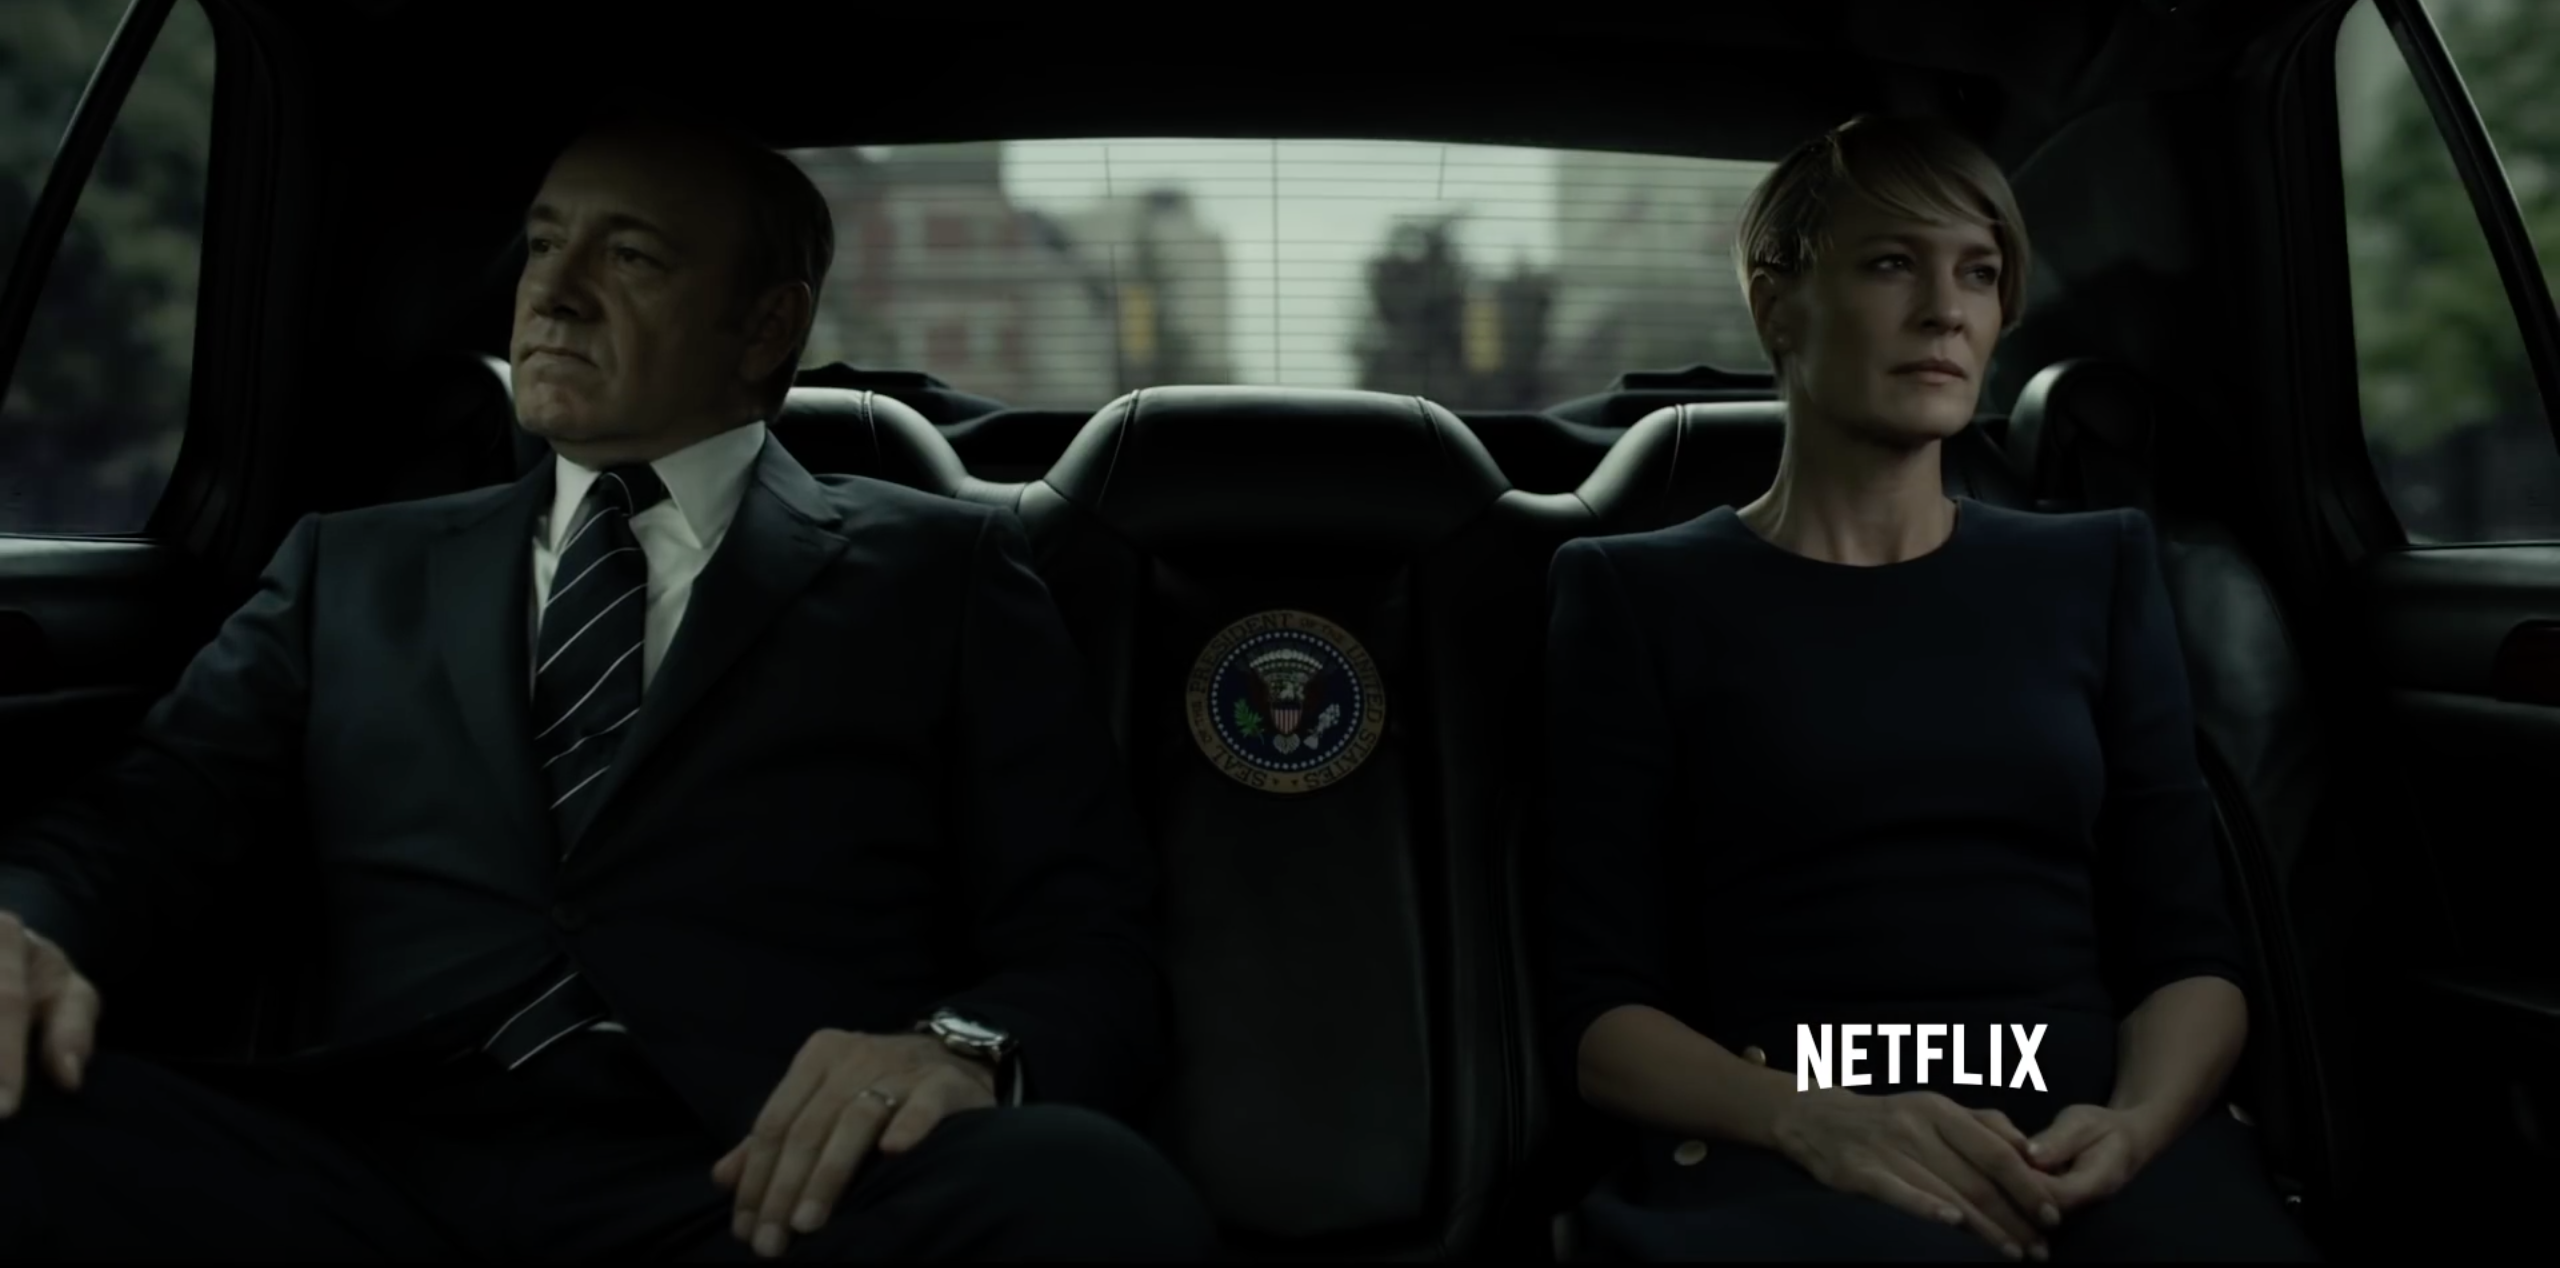 Robin Wright and Kevin Spacey Reveal Impact of Trump Presidency on 'House of Cards'